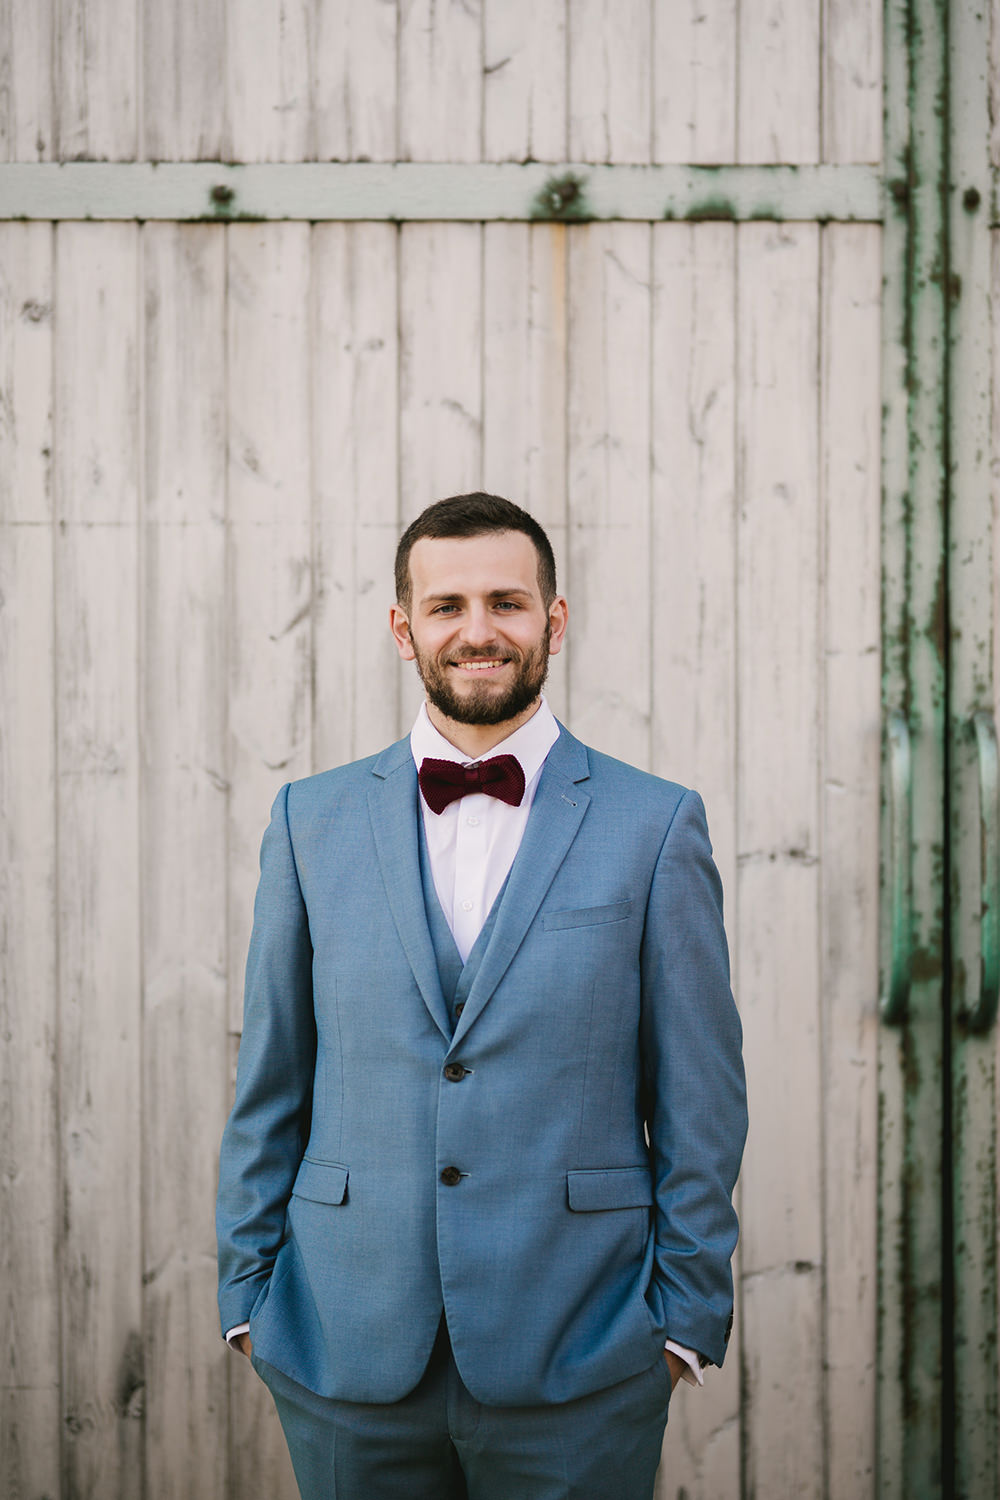 Groom Suit Blue Bowtie Red Dark Budgundy Antique Moody Floral Farm Wedding Ideas Jemma King Photography